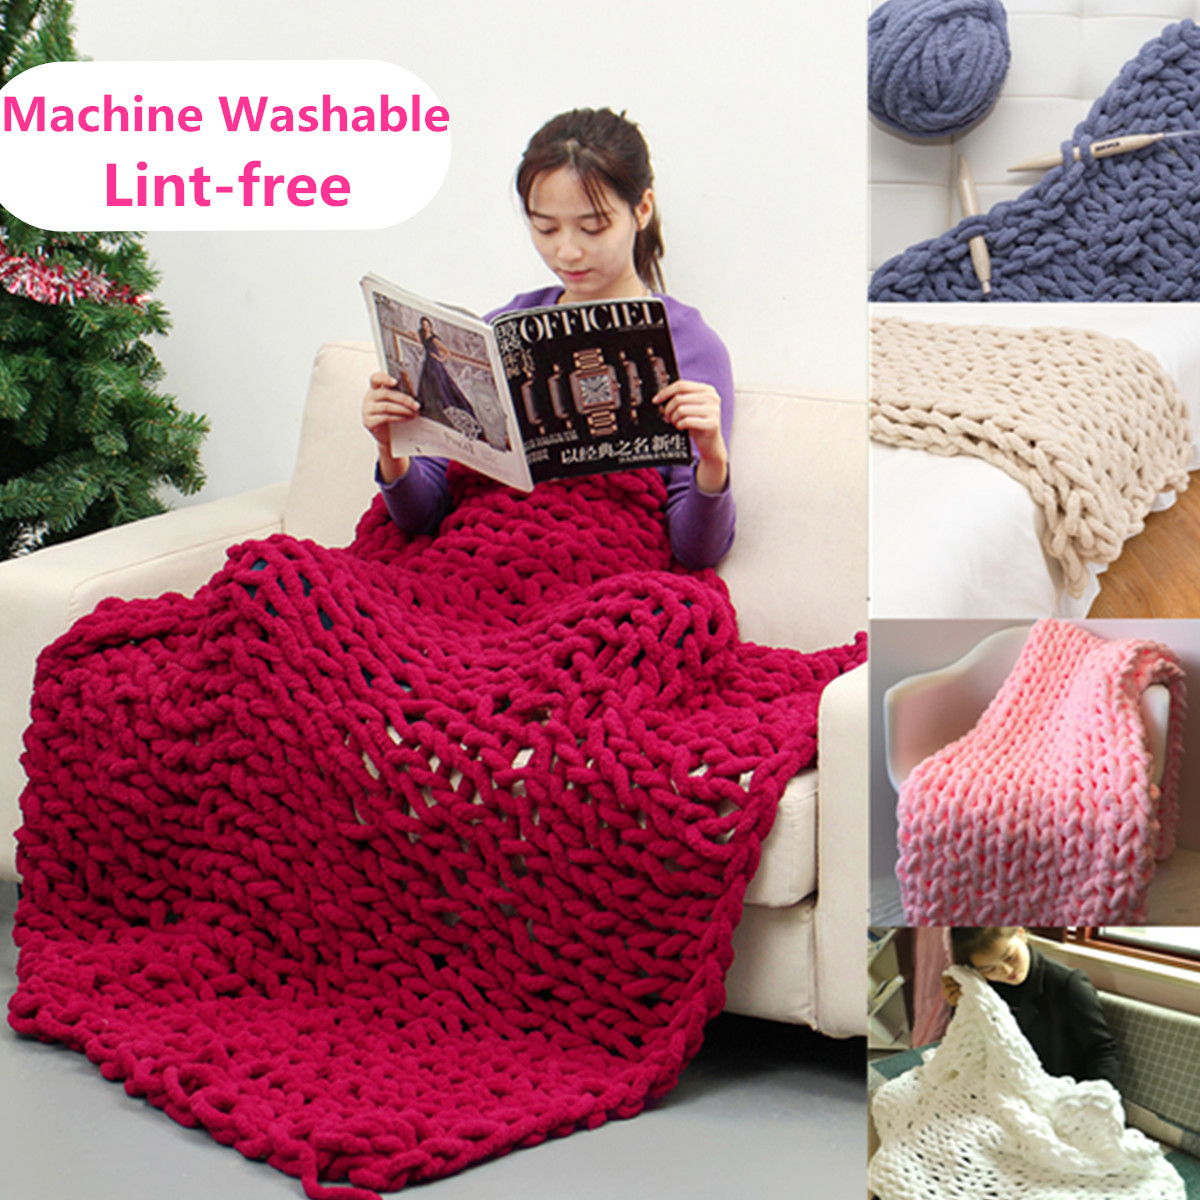 5 Sizes Warm Soft Chunky Hand-woven Knit Blanket Bulky Thick Yarn Knitted Bed Sofa Throw Rug - Washable & Lint-free